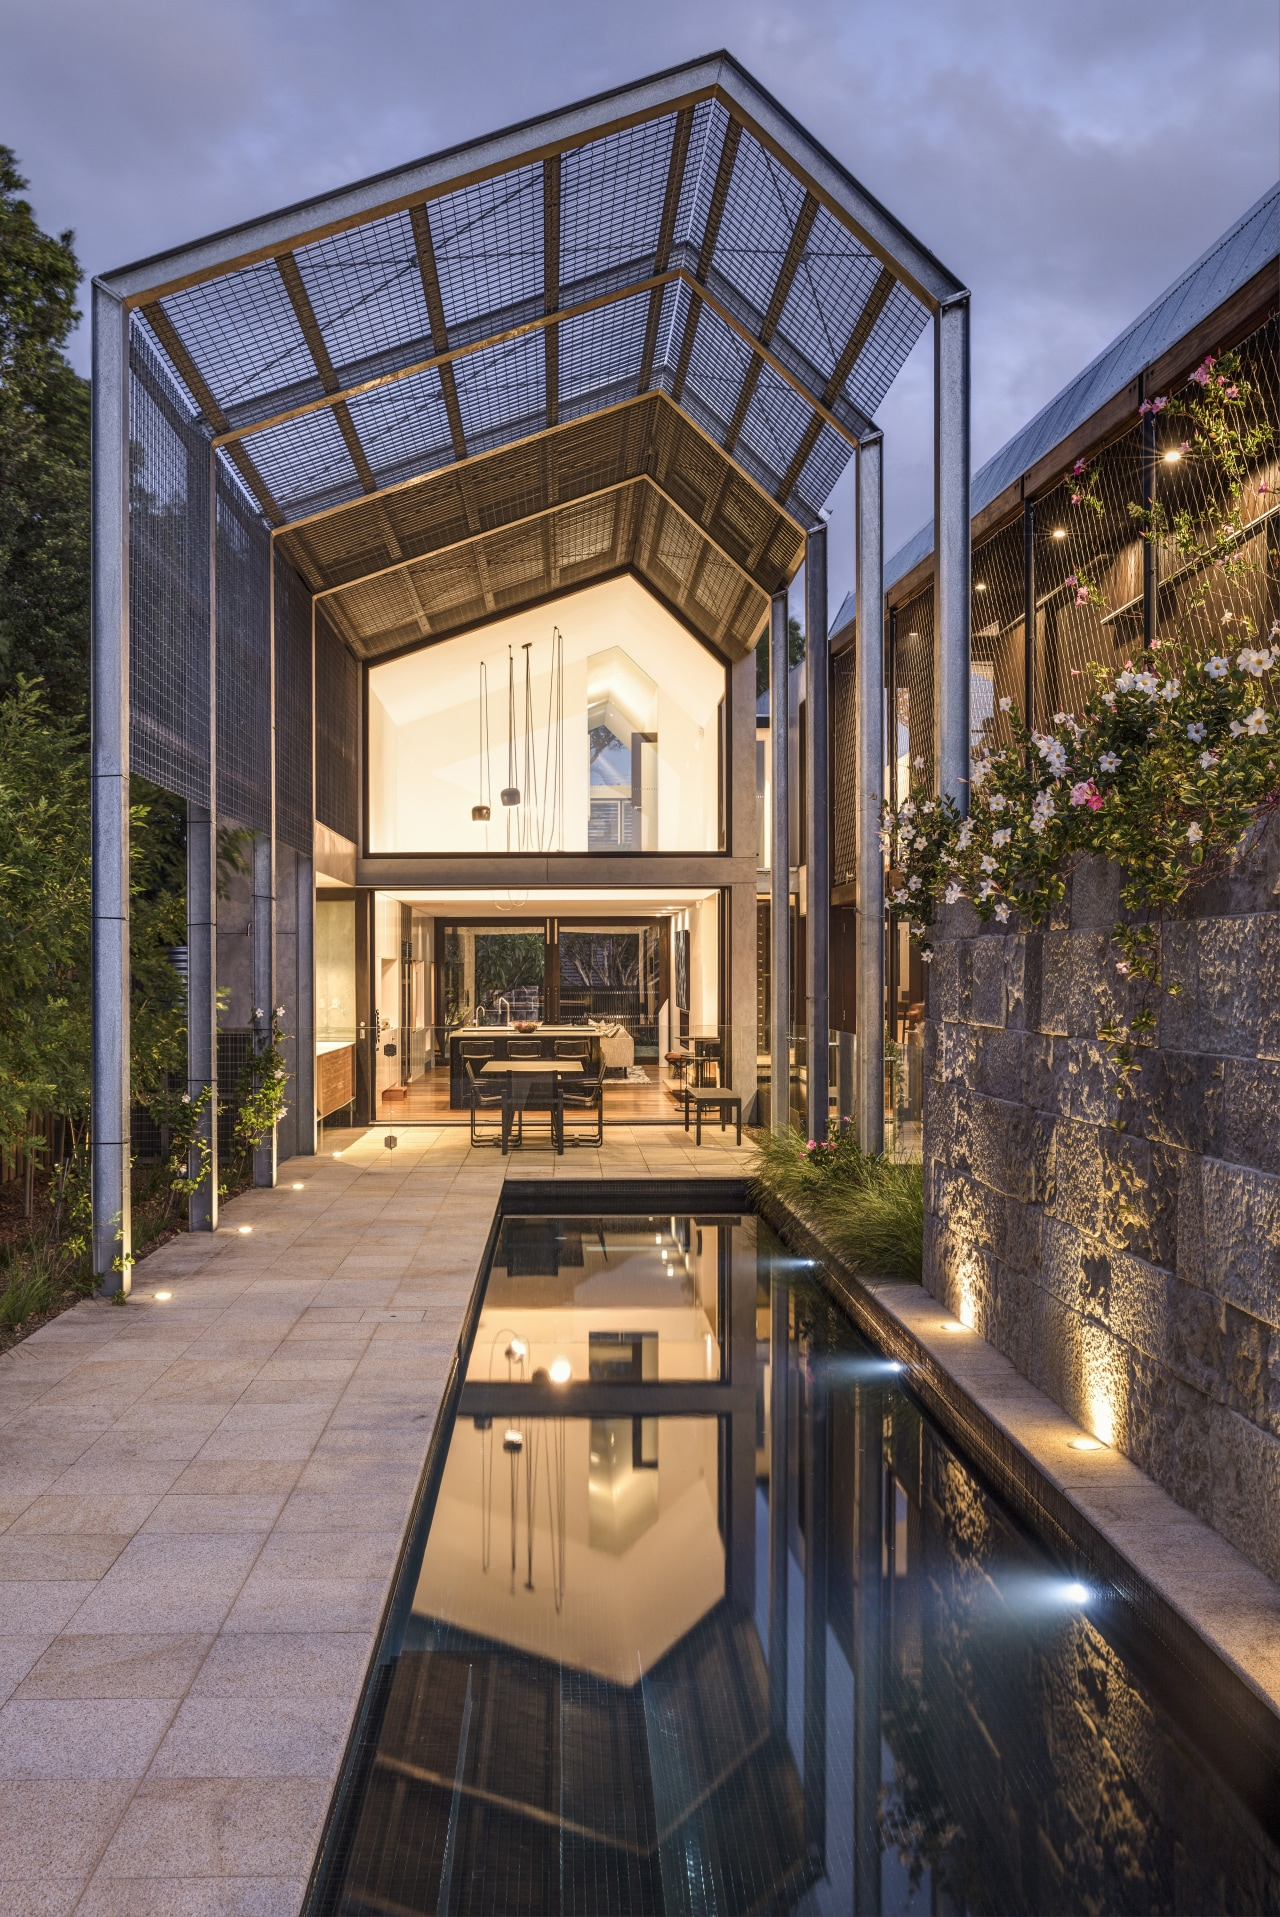 The roof over a covered terrace continues the architecture, building, coverd terrace, courtyard, design, home, house, interior design, roof, room, tree, window, black